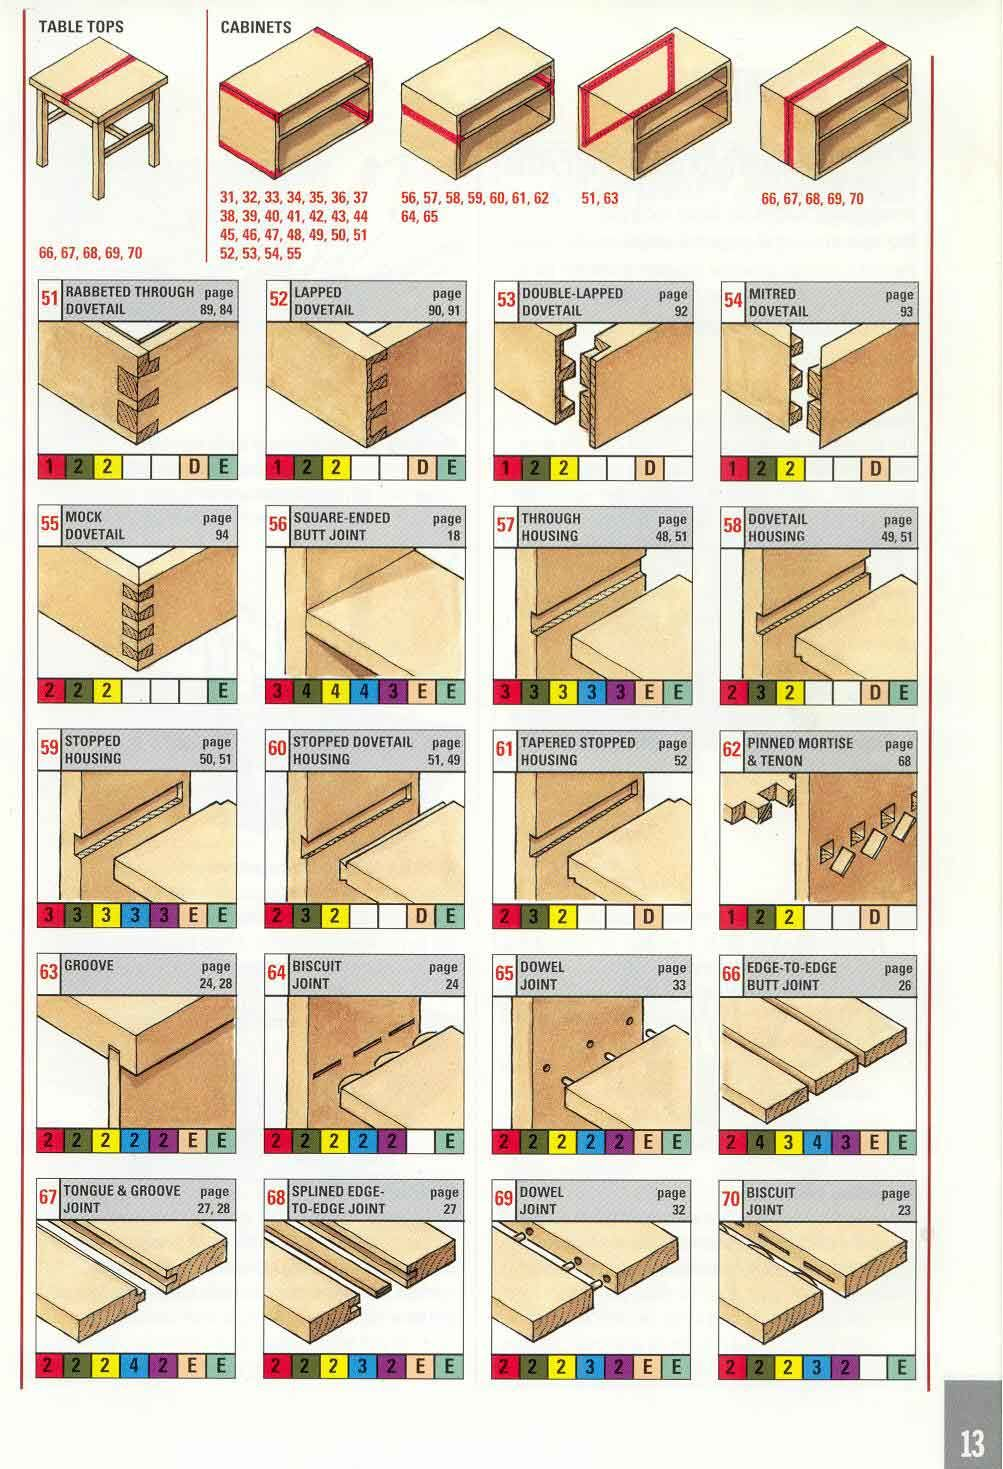 Pin By Daniel Souther On Technical And Tooling Pinterest Wood